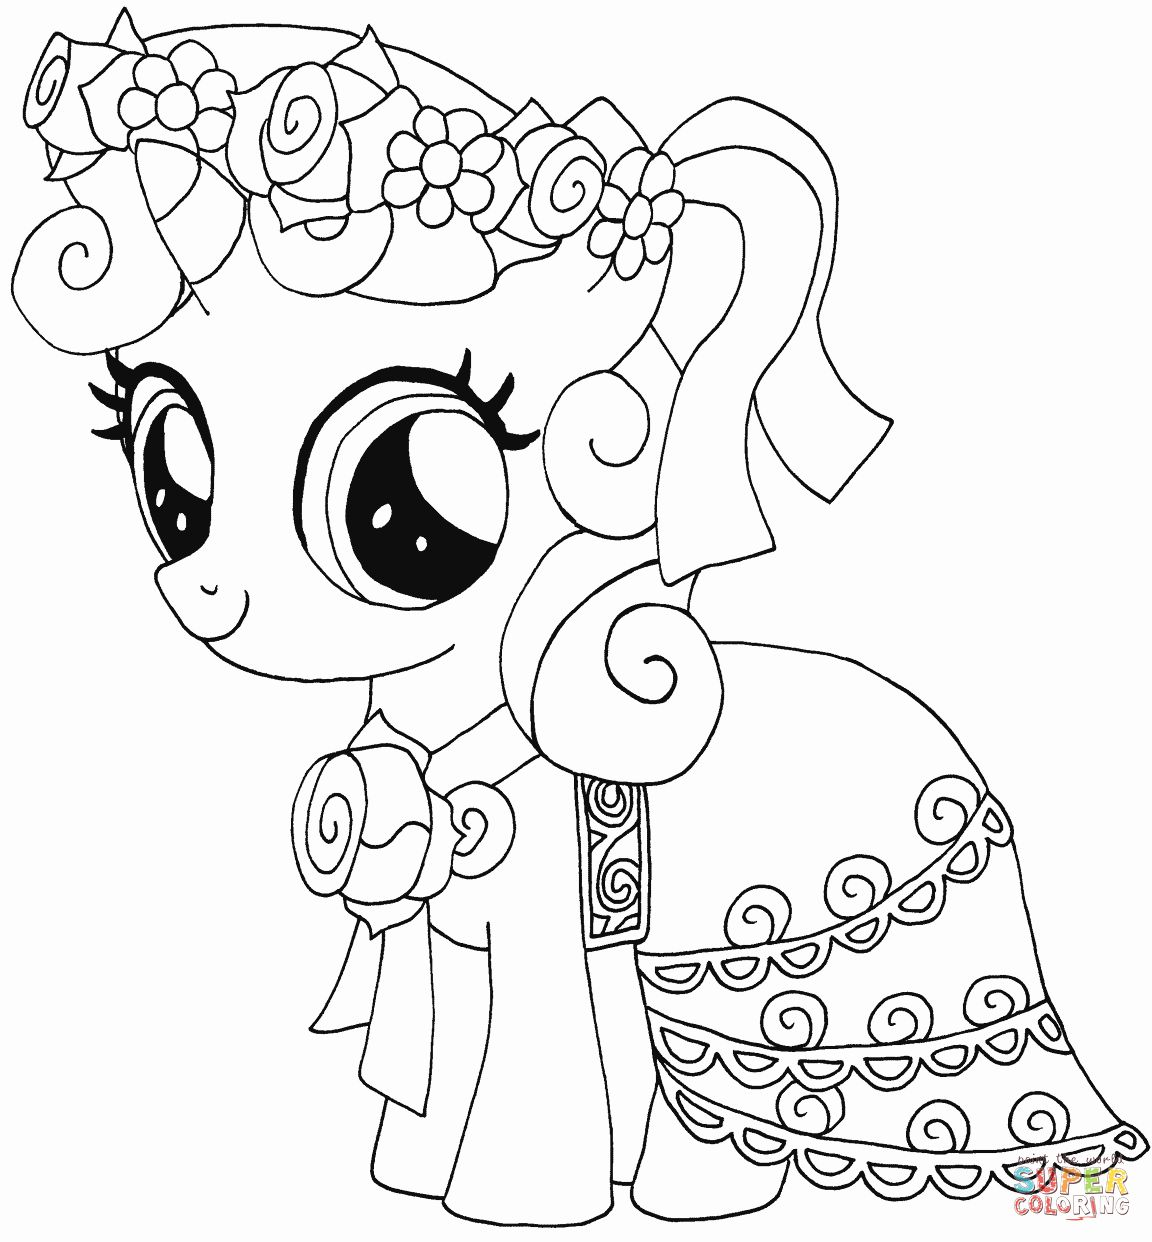 Alphabet Colouring Twinkl Elegant My Little Pony Coloring Pages My Little Pony Coloring Pony Drawing Horse Coloring Pages